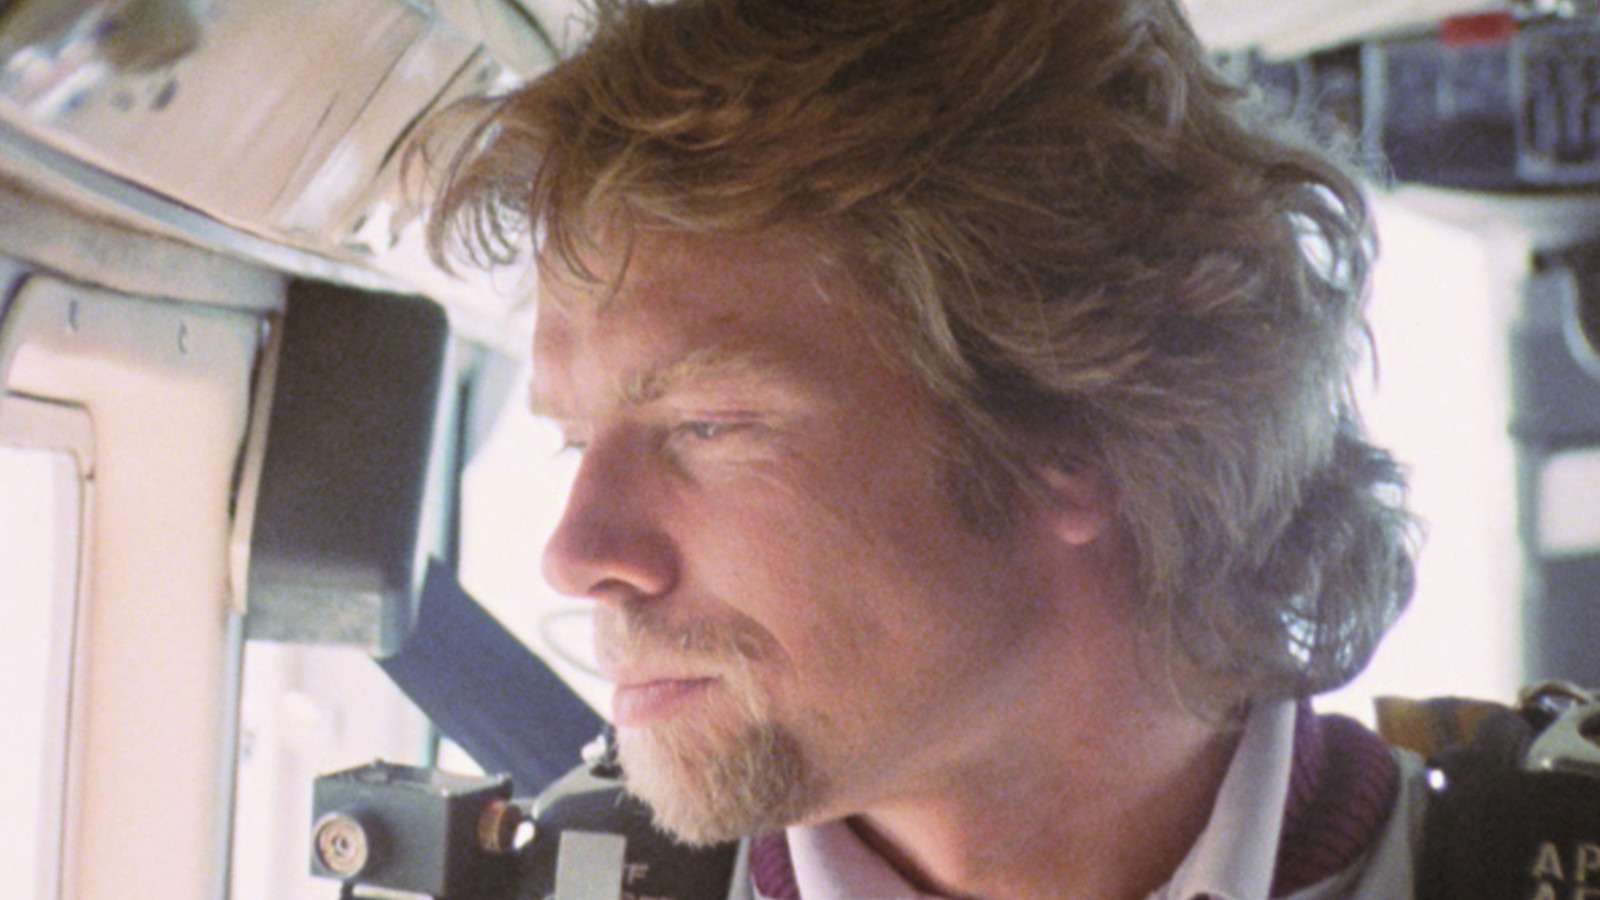 Mogul Richard Branson's adventures chronicled in amusing documentary 'Don't Look Down'